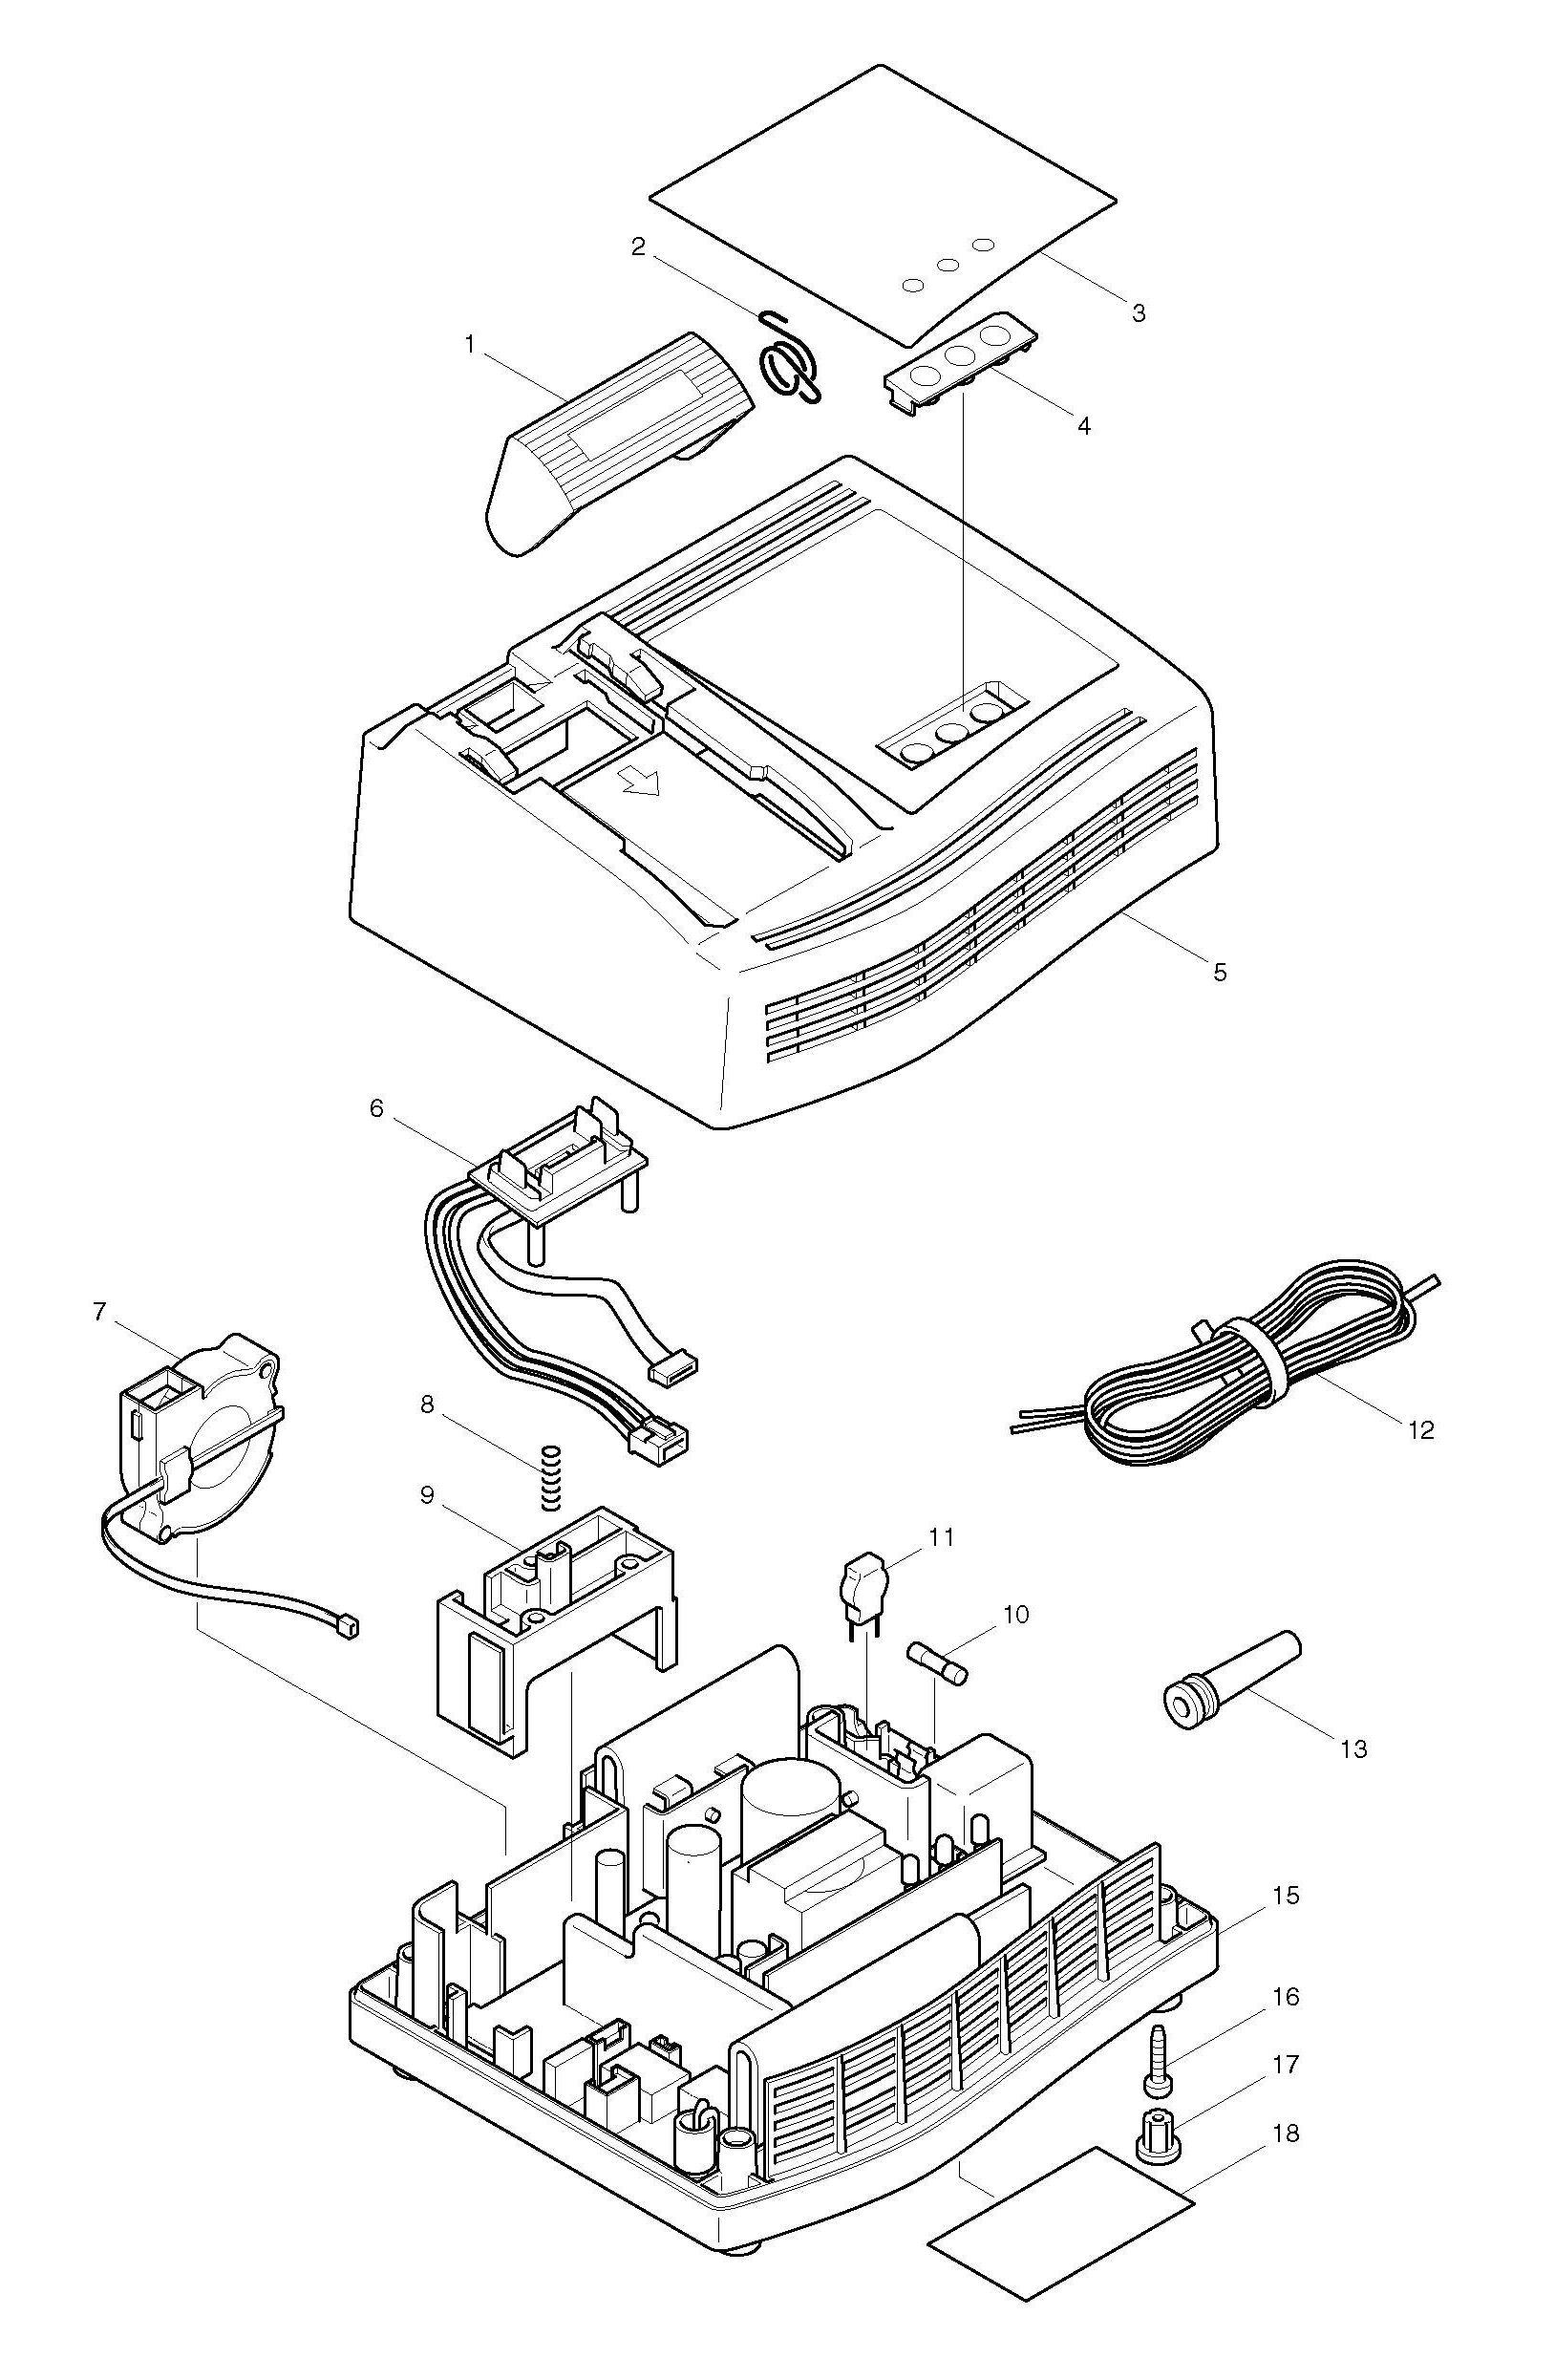 Dewalt Charger Schematic